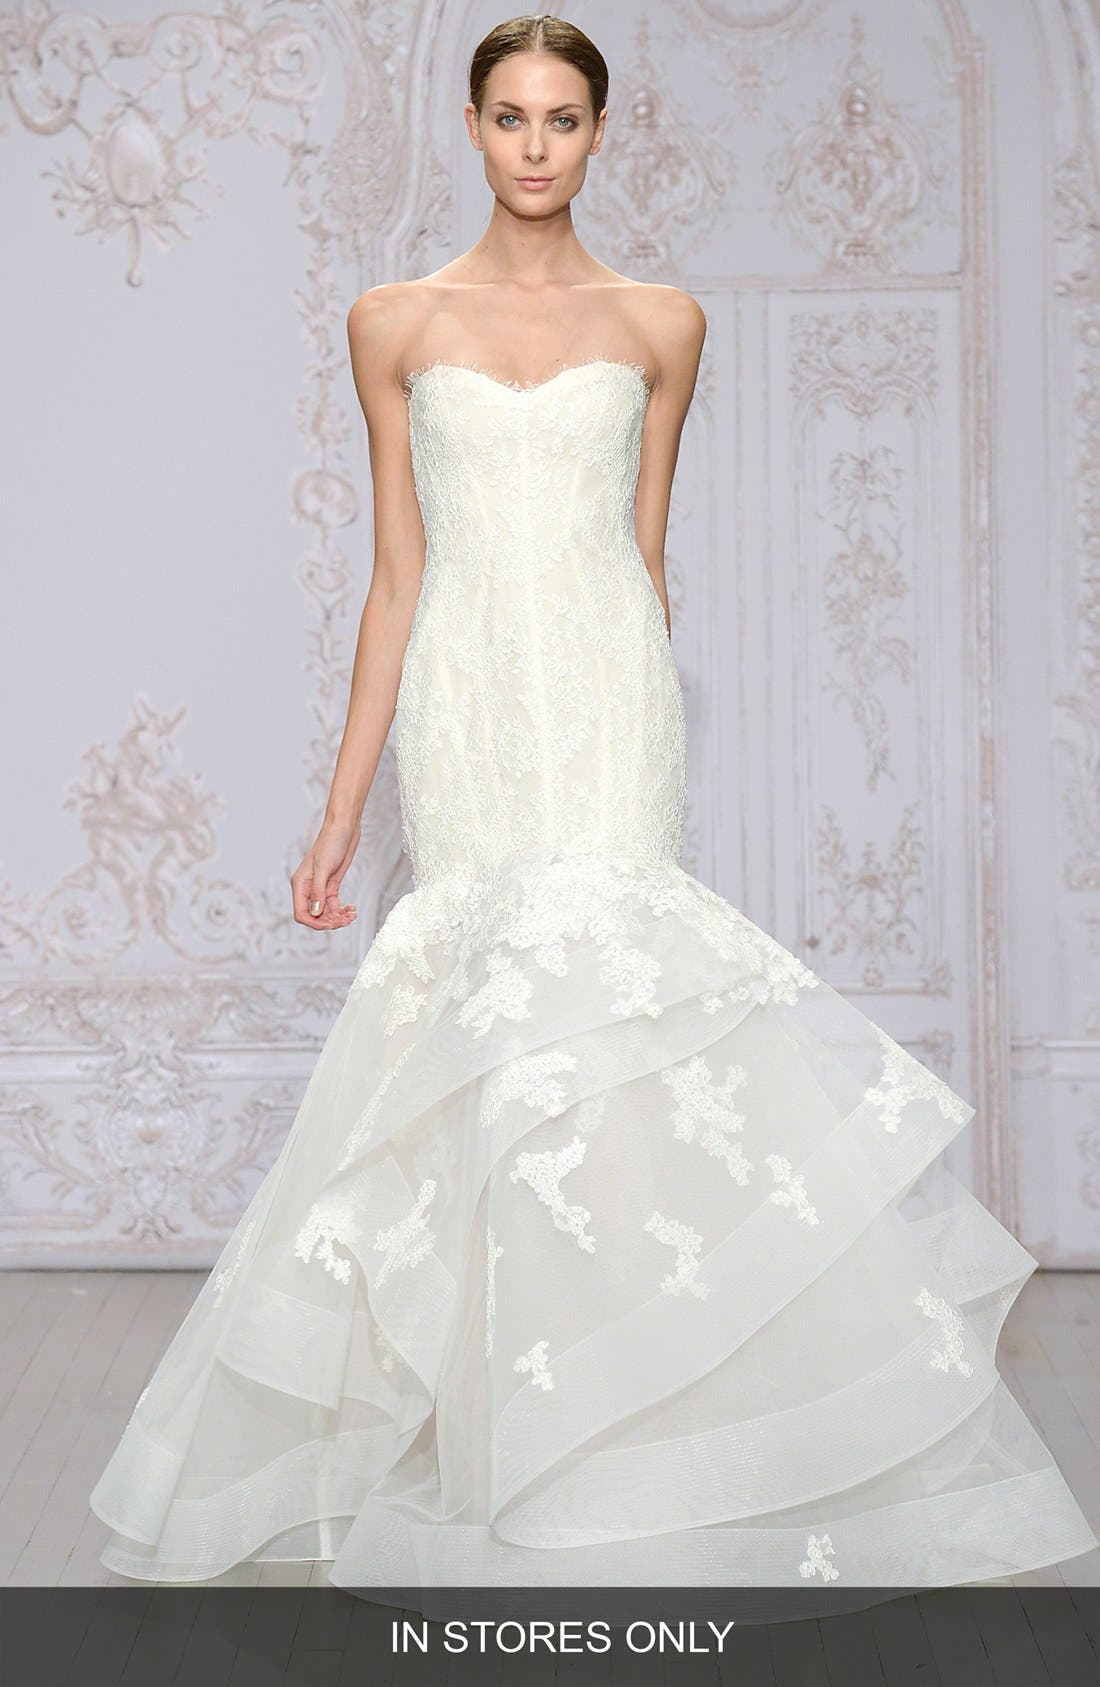 Monique Lhuillier 'Saffron' Strapless Lace & Organza Mermaid Gown (In Stores Only)